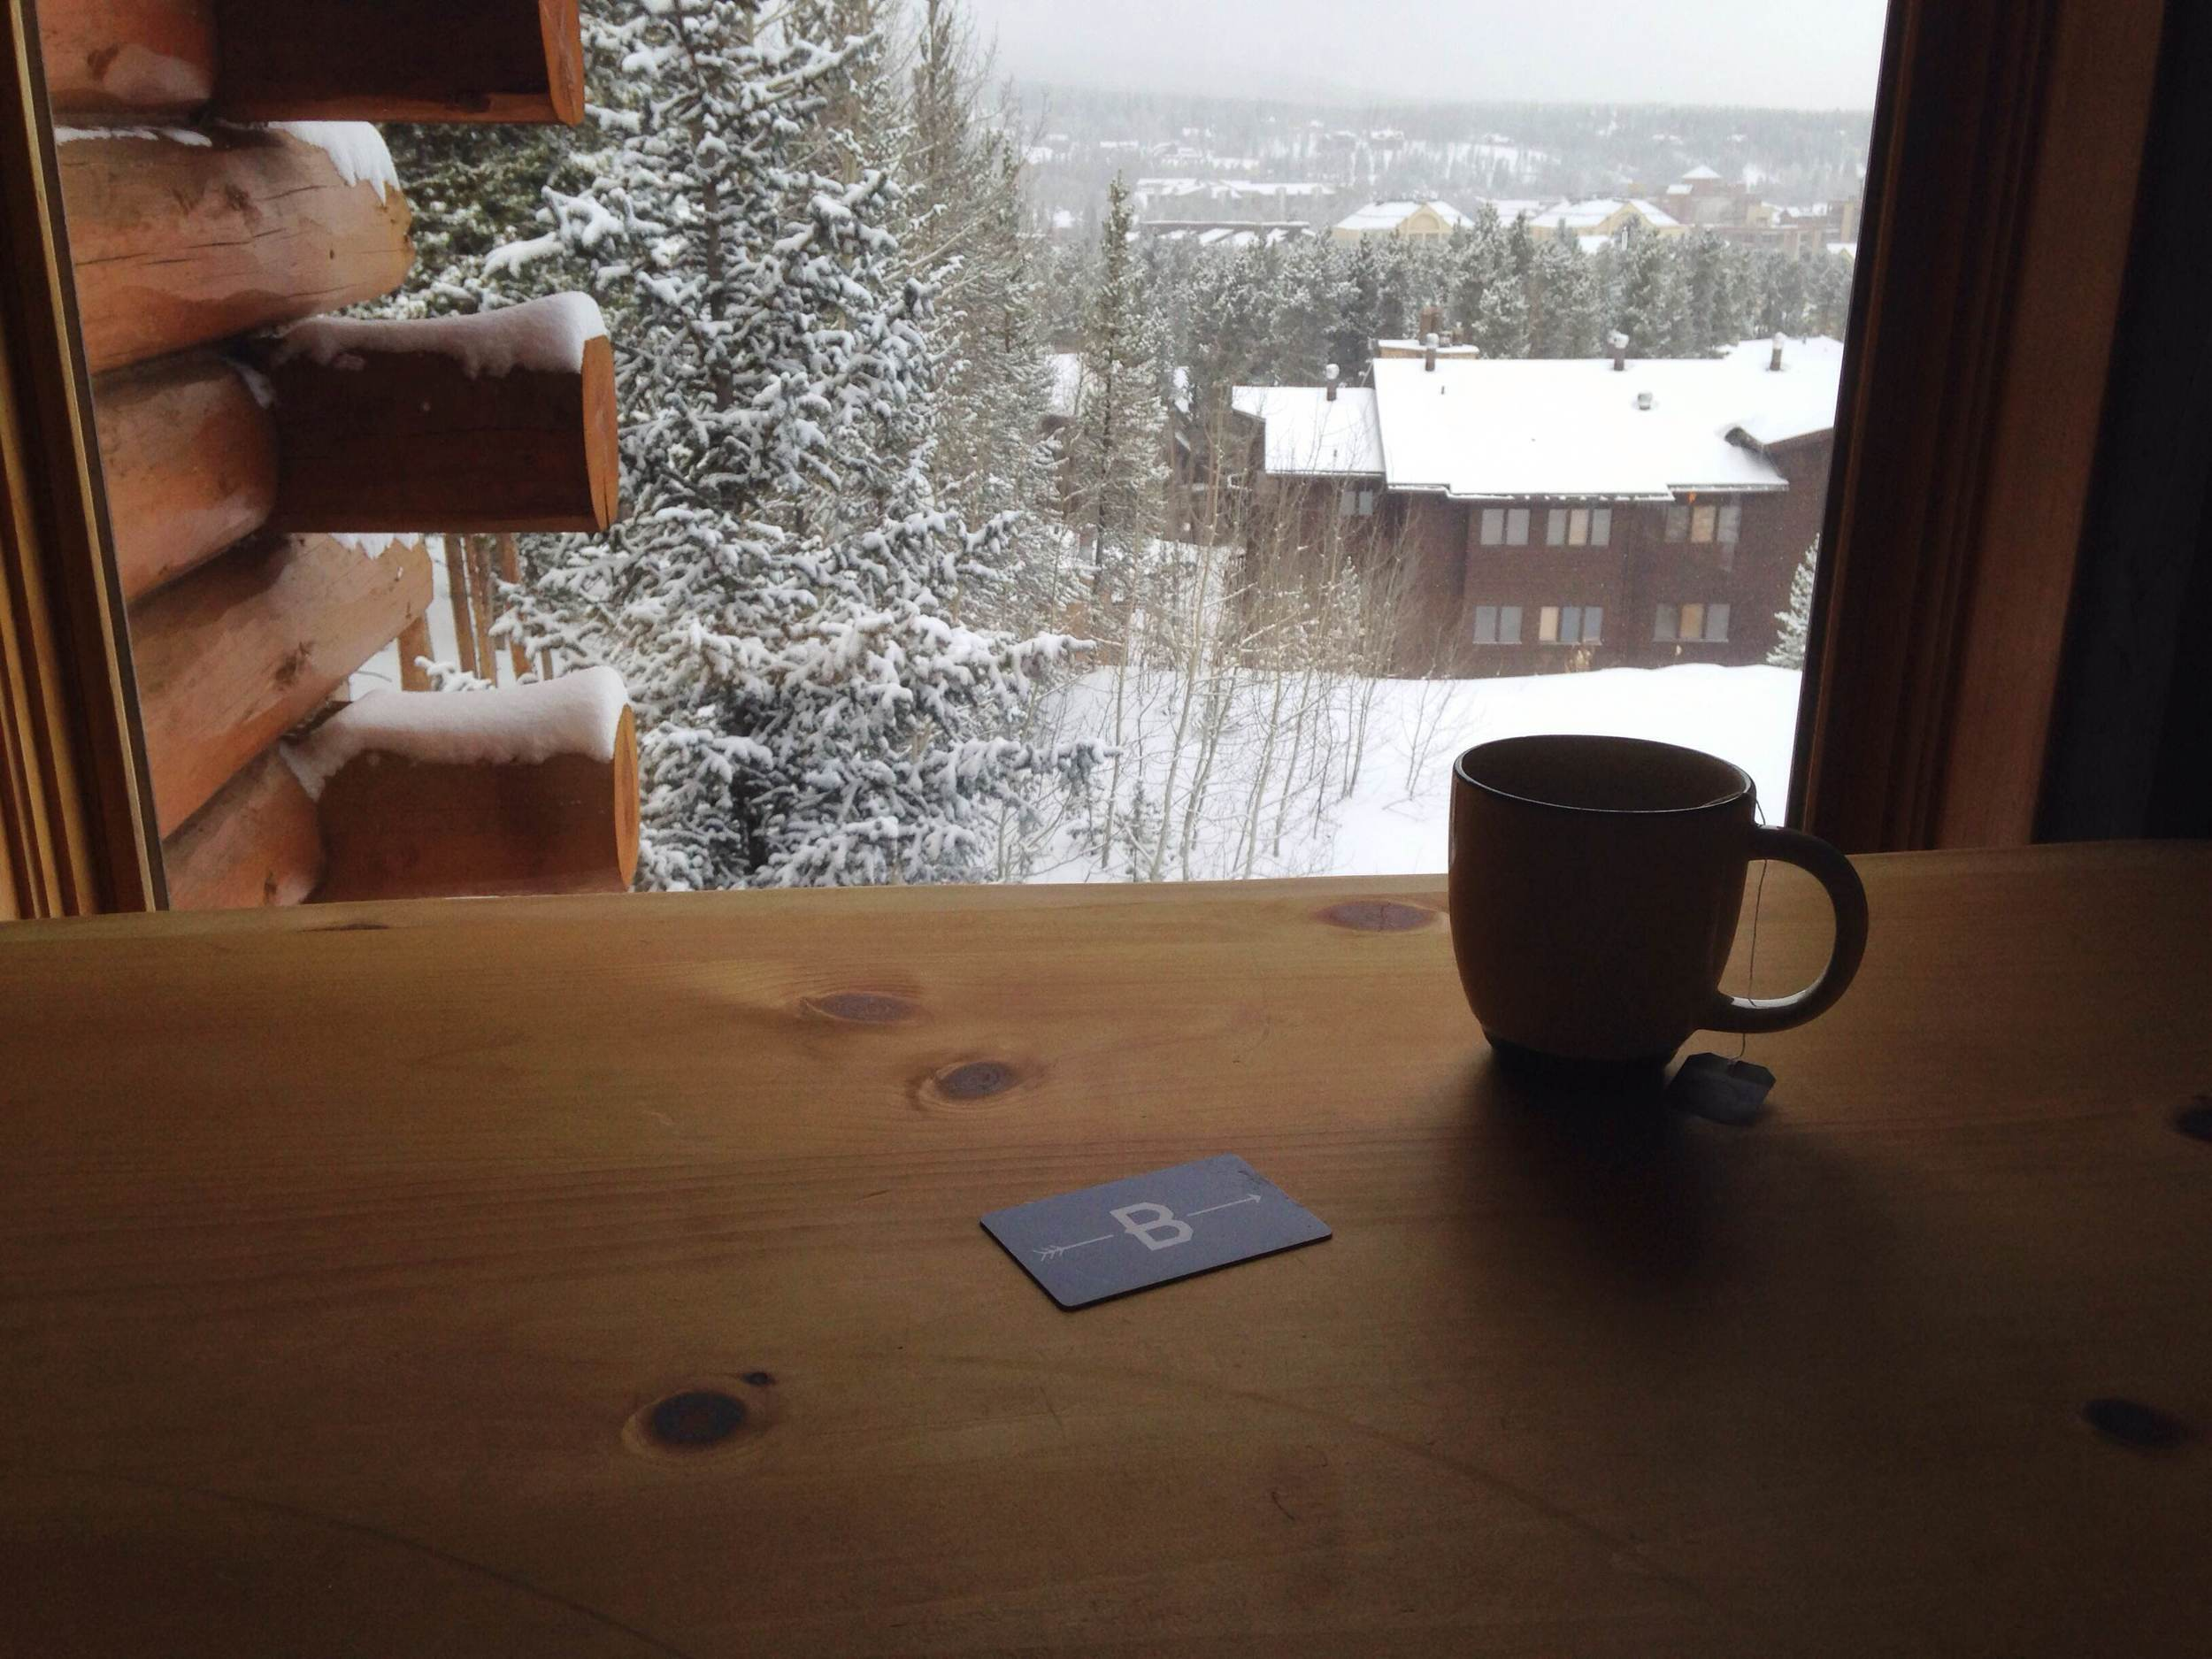 Every window in looks out to a beautiful winter wonderland. Photo by Kassondra Cloos